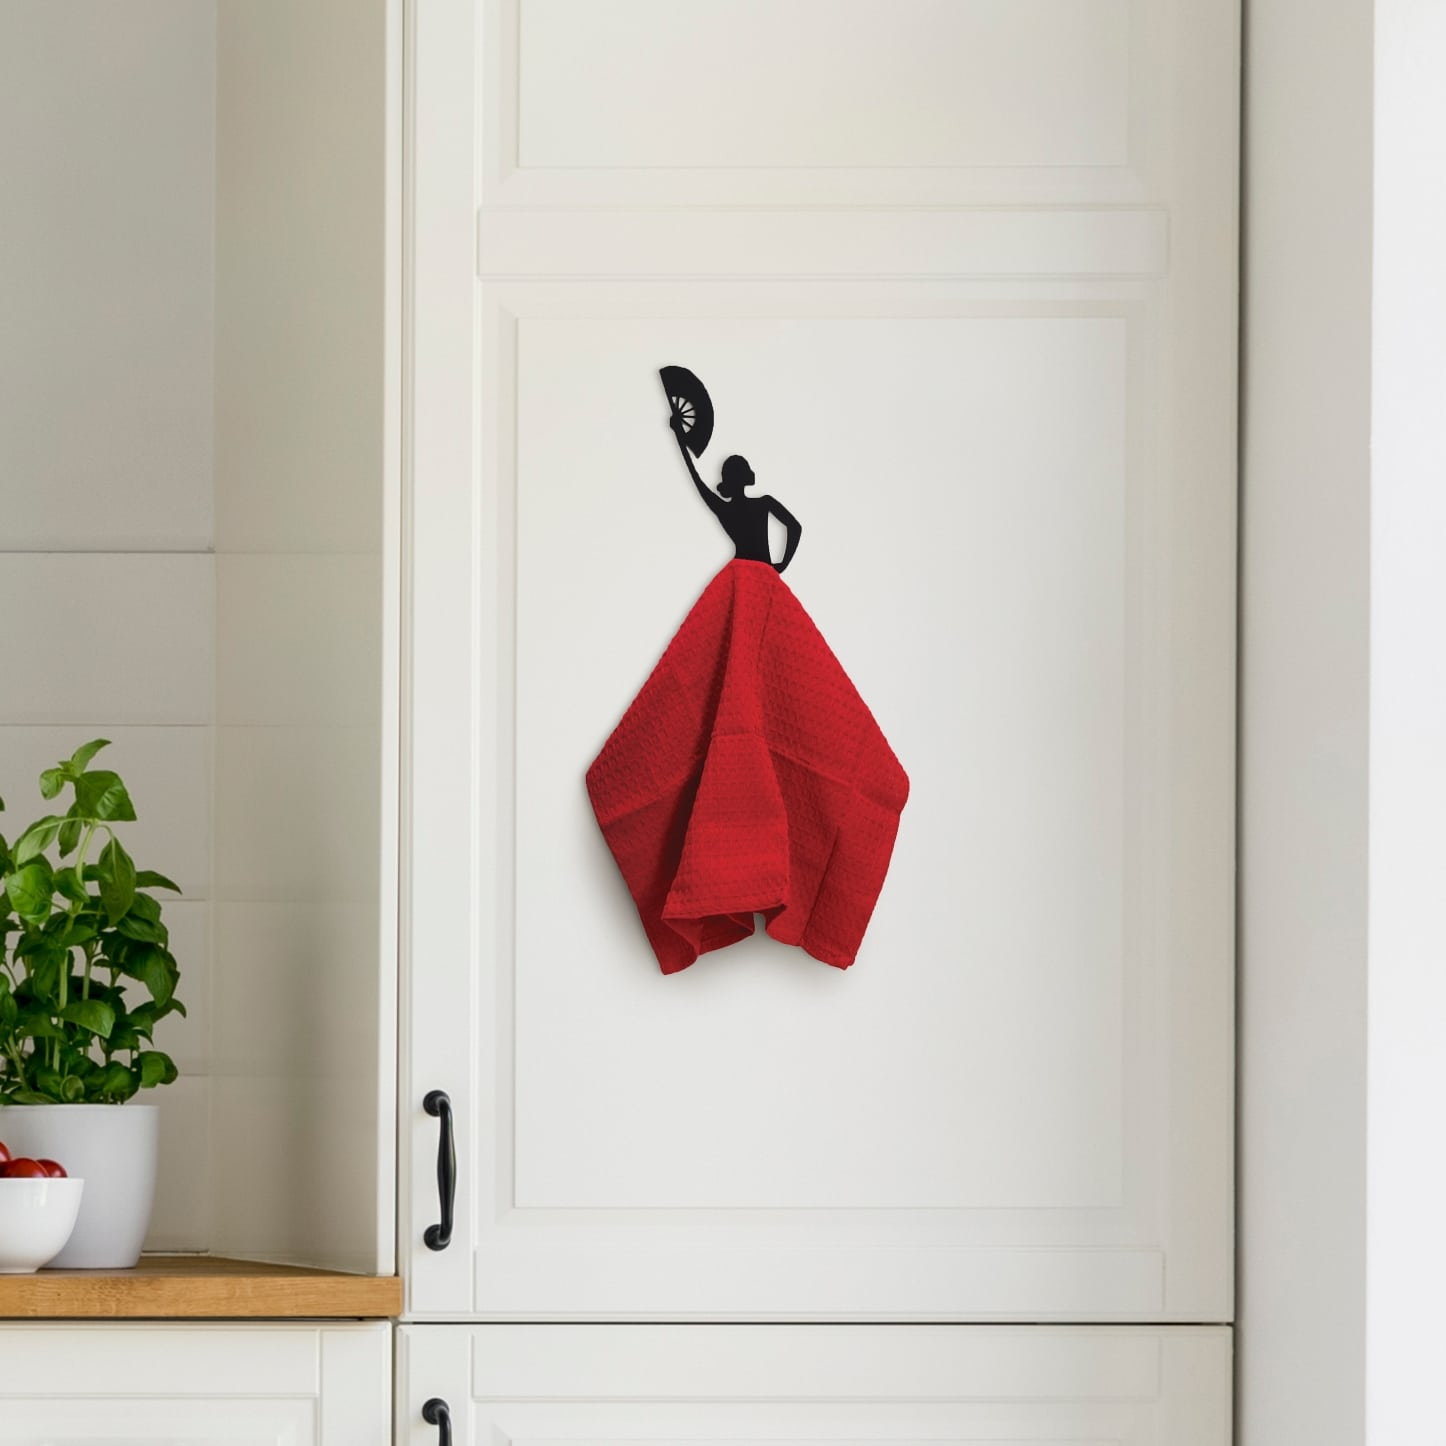 Olé hook - kitchen towel hanger